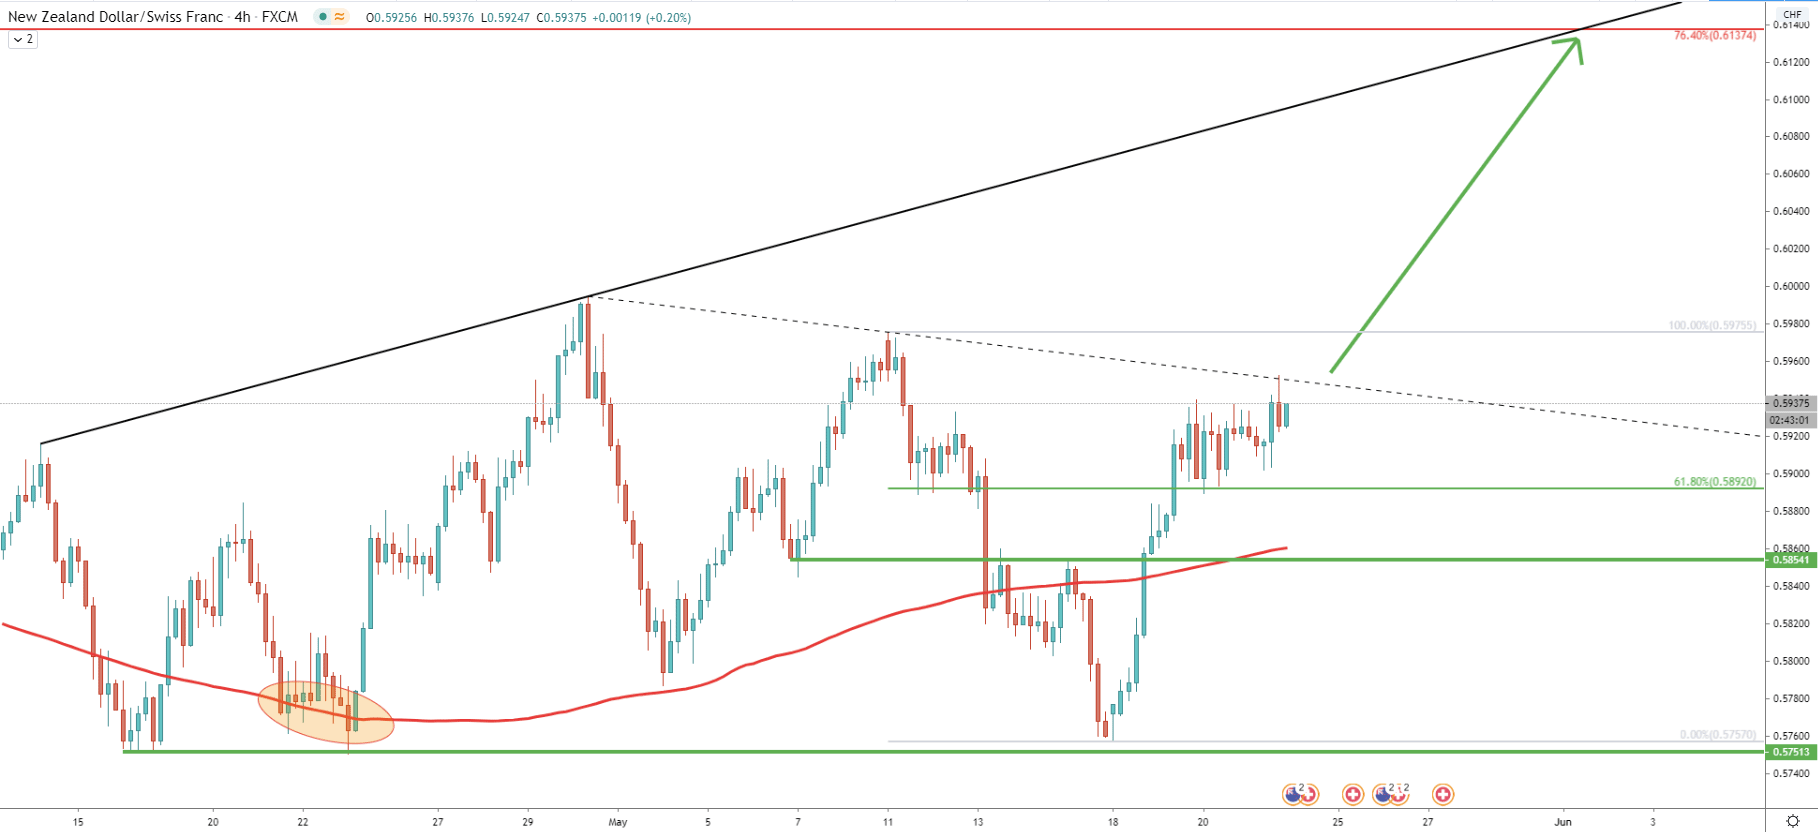 NZD/CHF 4-Hour Technical Analysis 21 May 2020